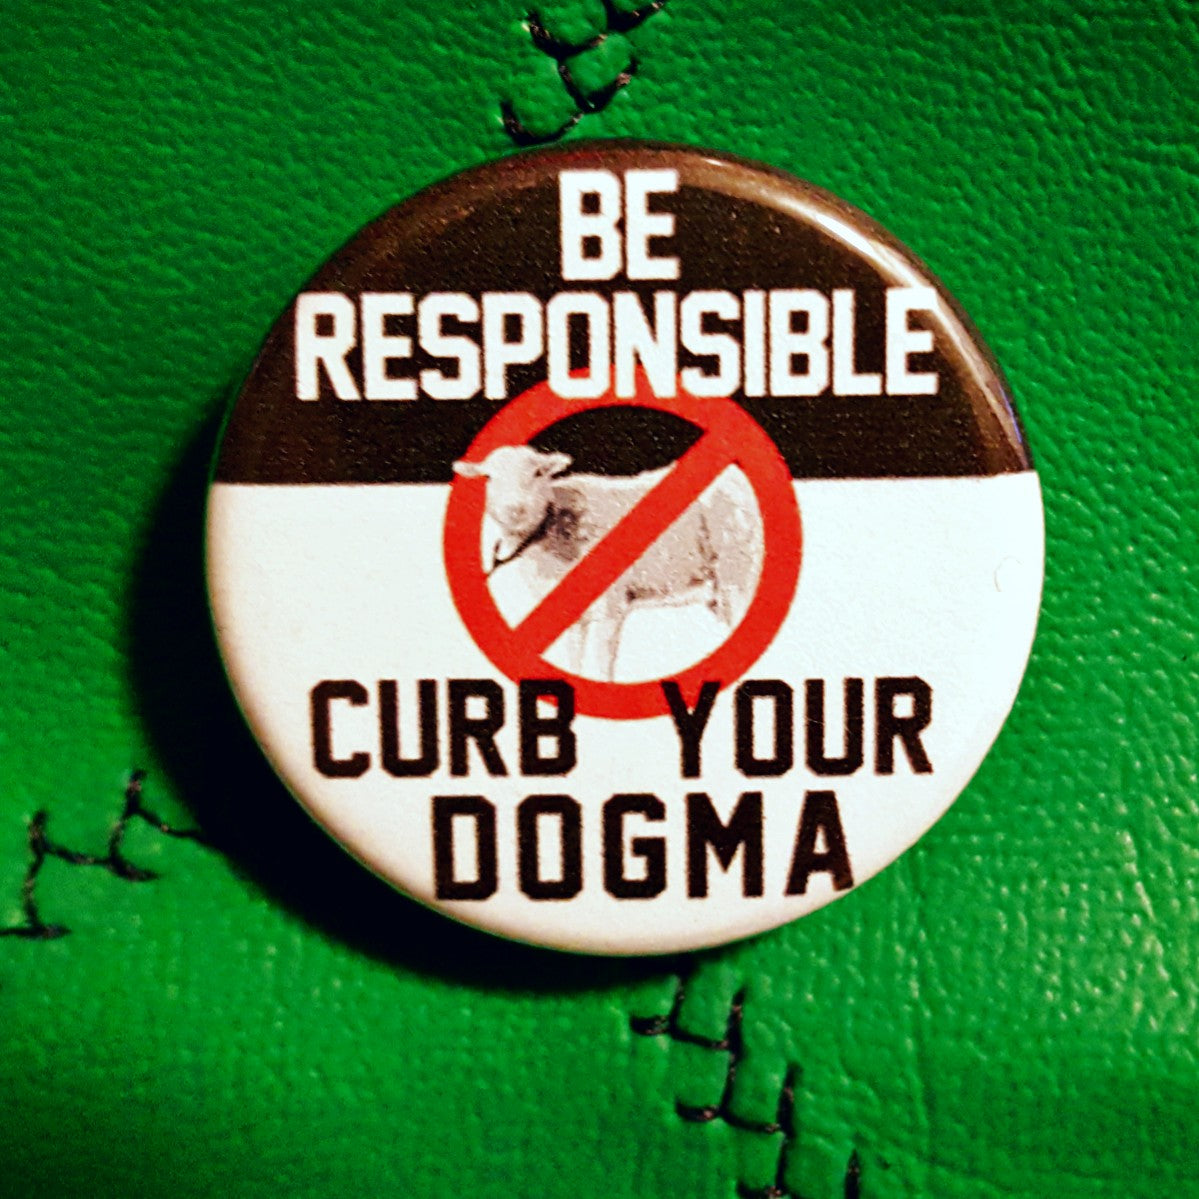 Curb your Dogma 1.25 inch Pinback Button or Magnet